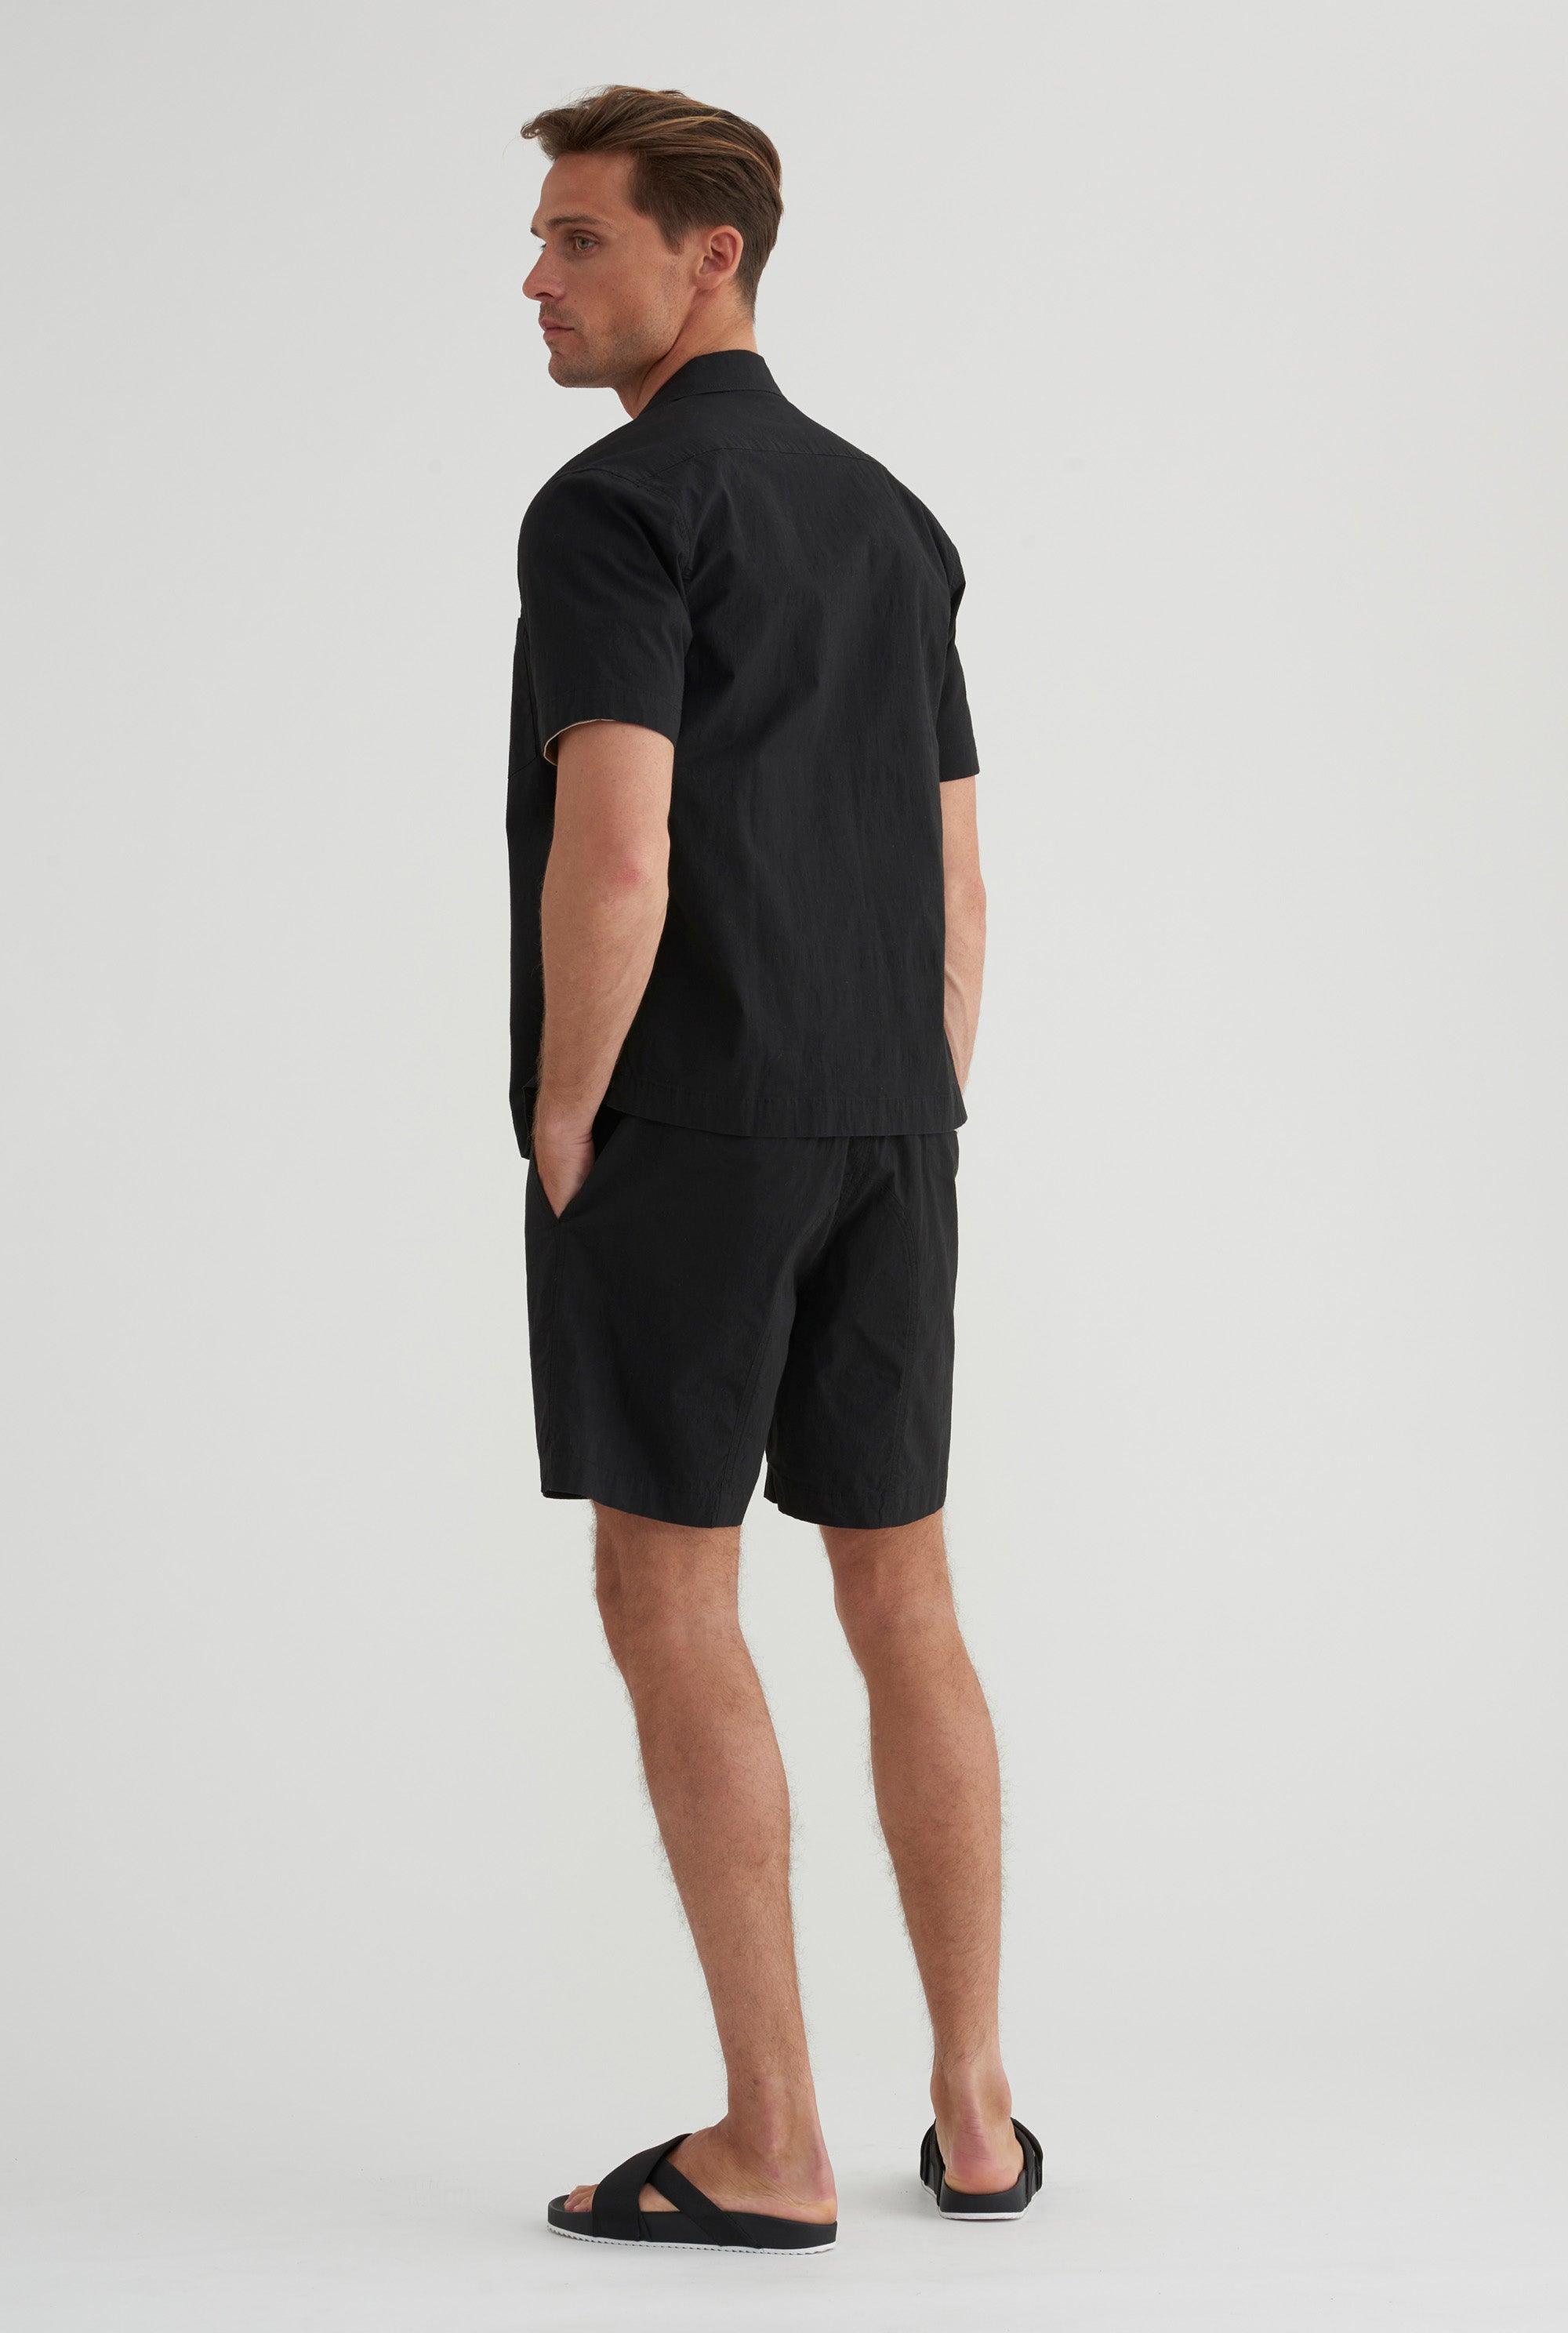 Short Sleeve Zip Shirt - Black